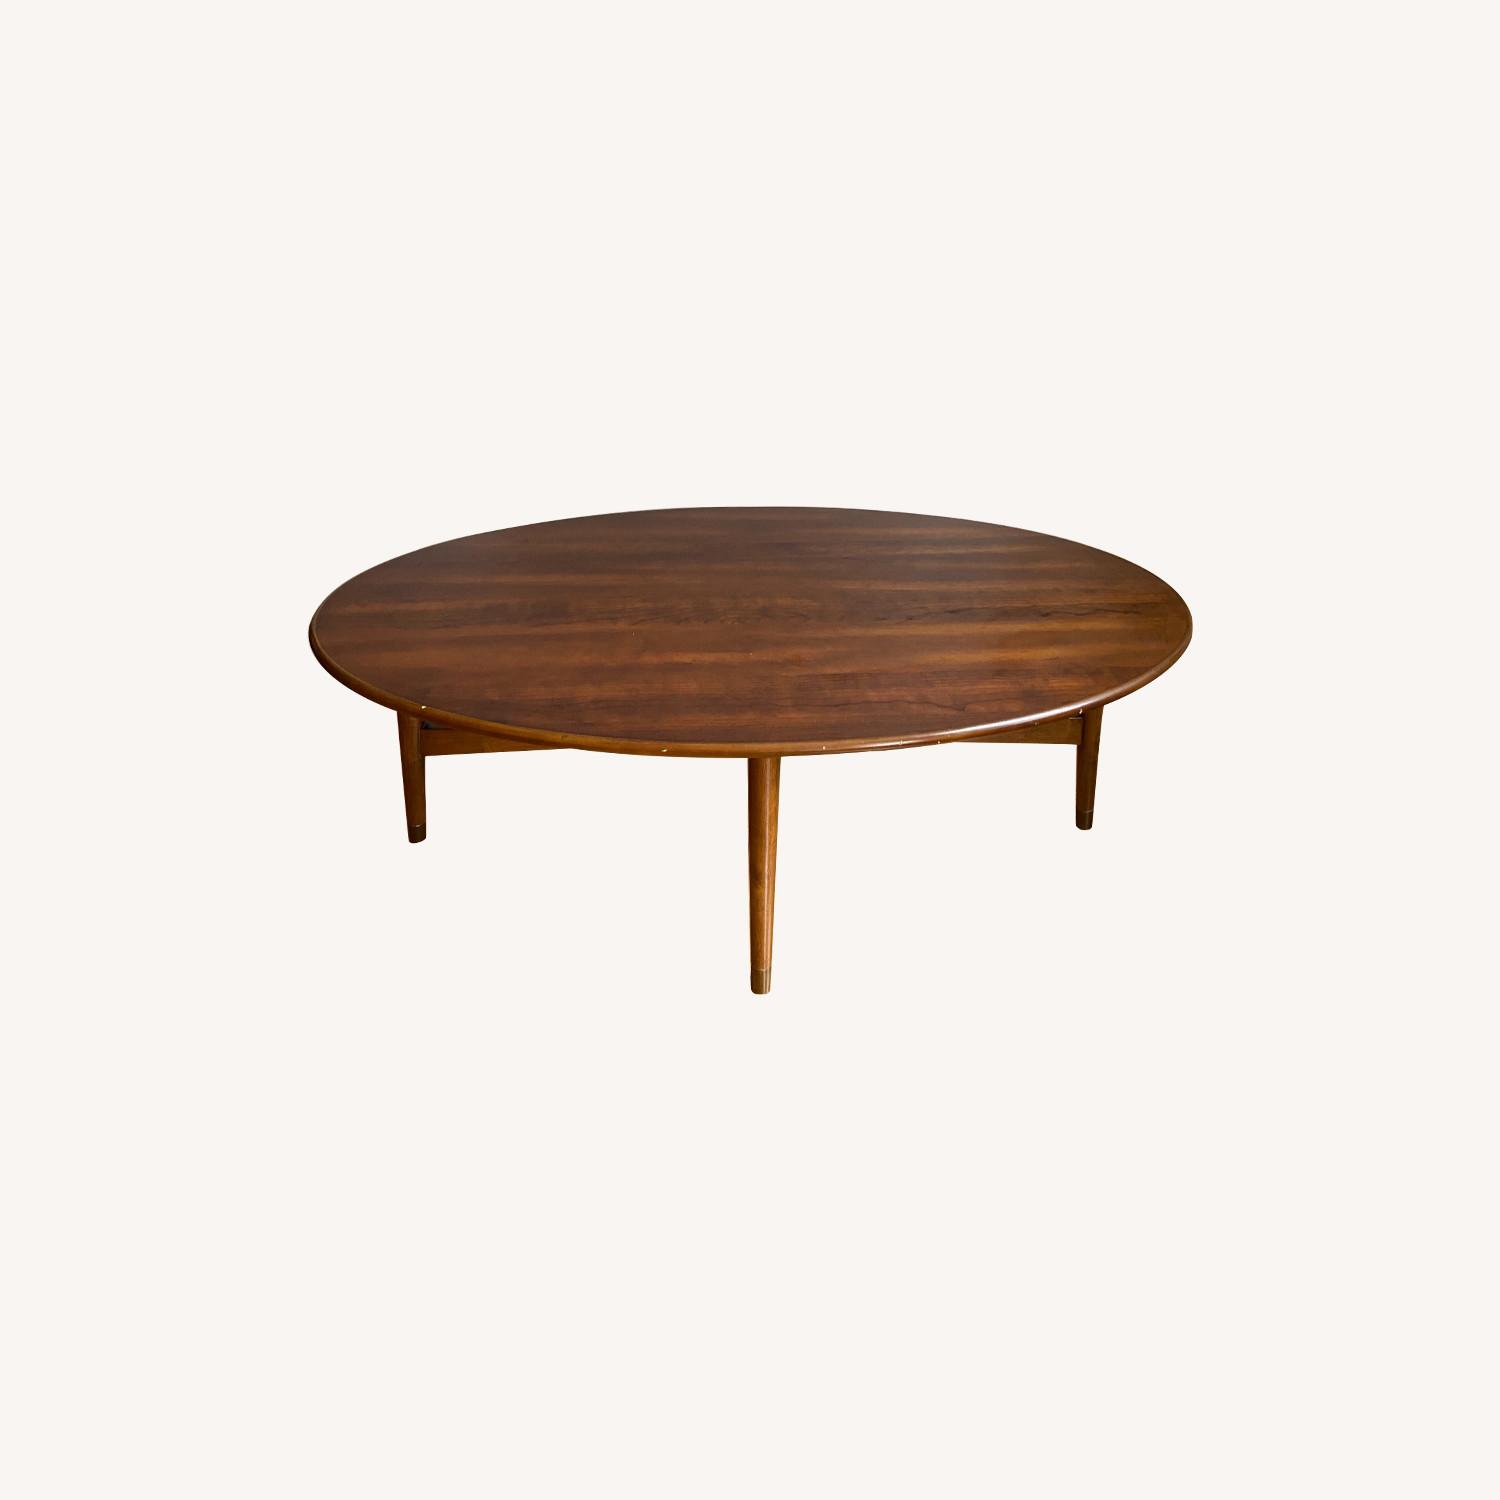 Pier 1 Coffee Table - image-0